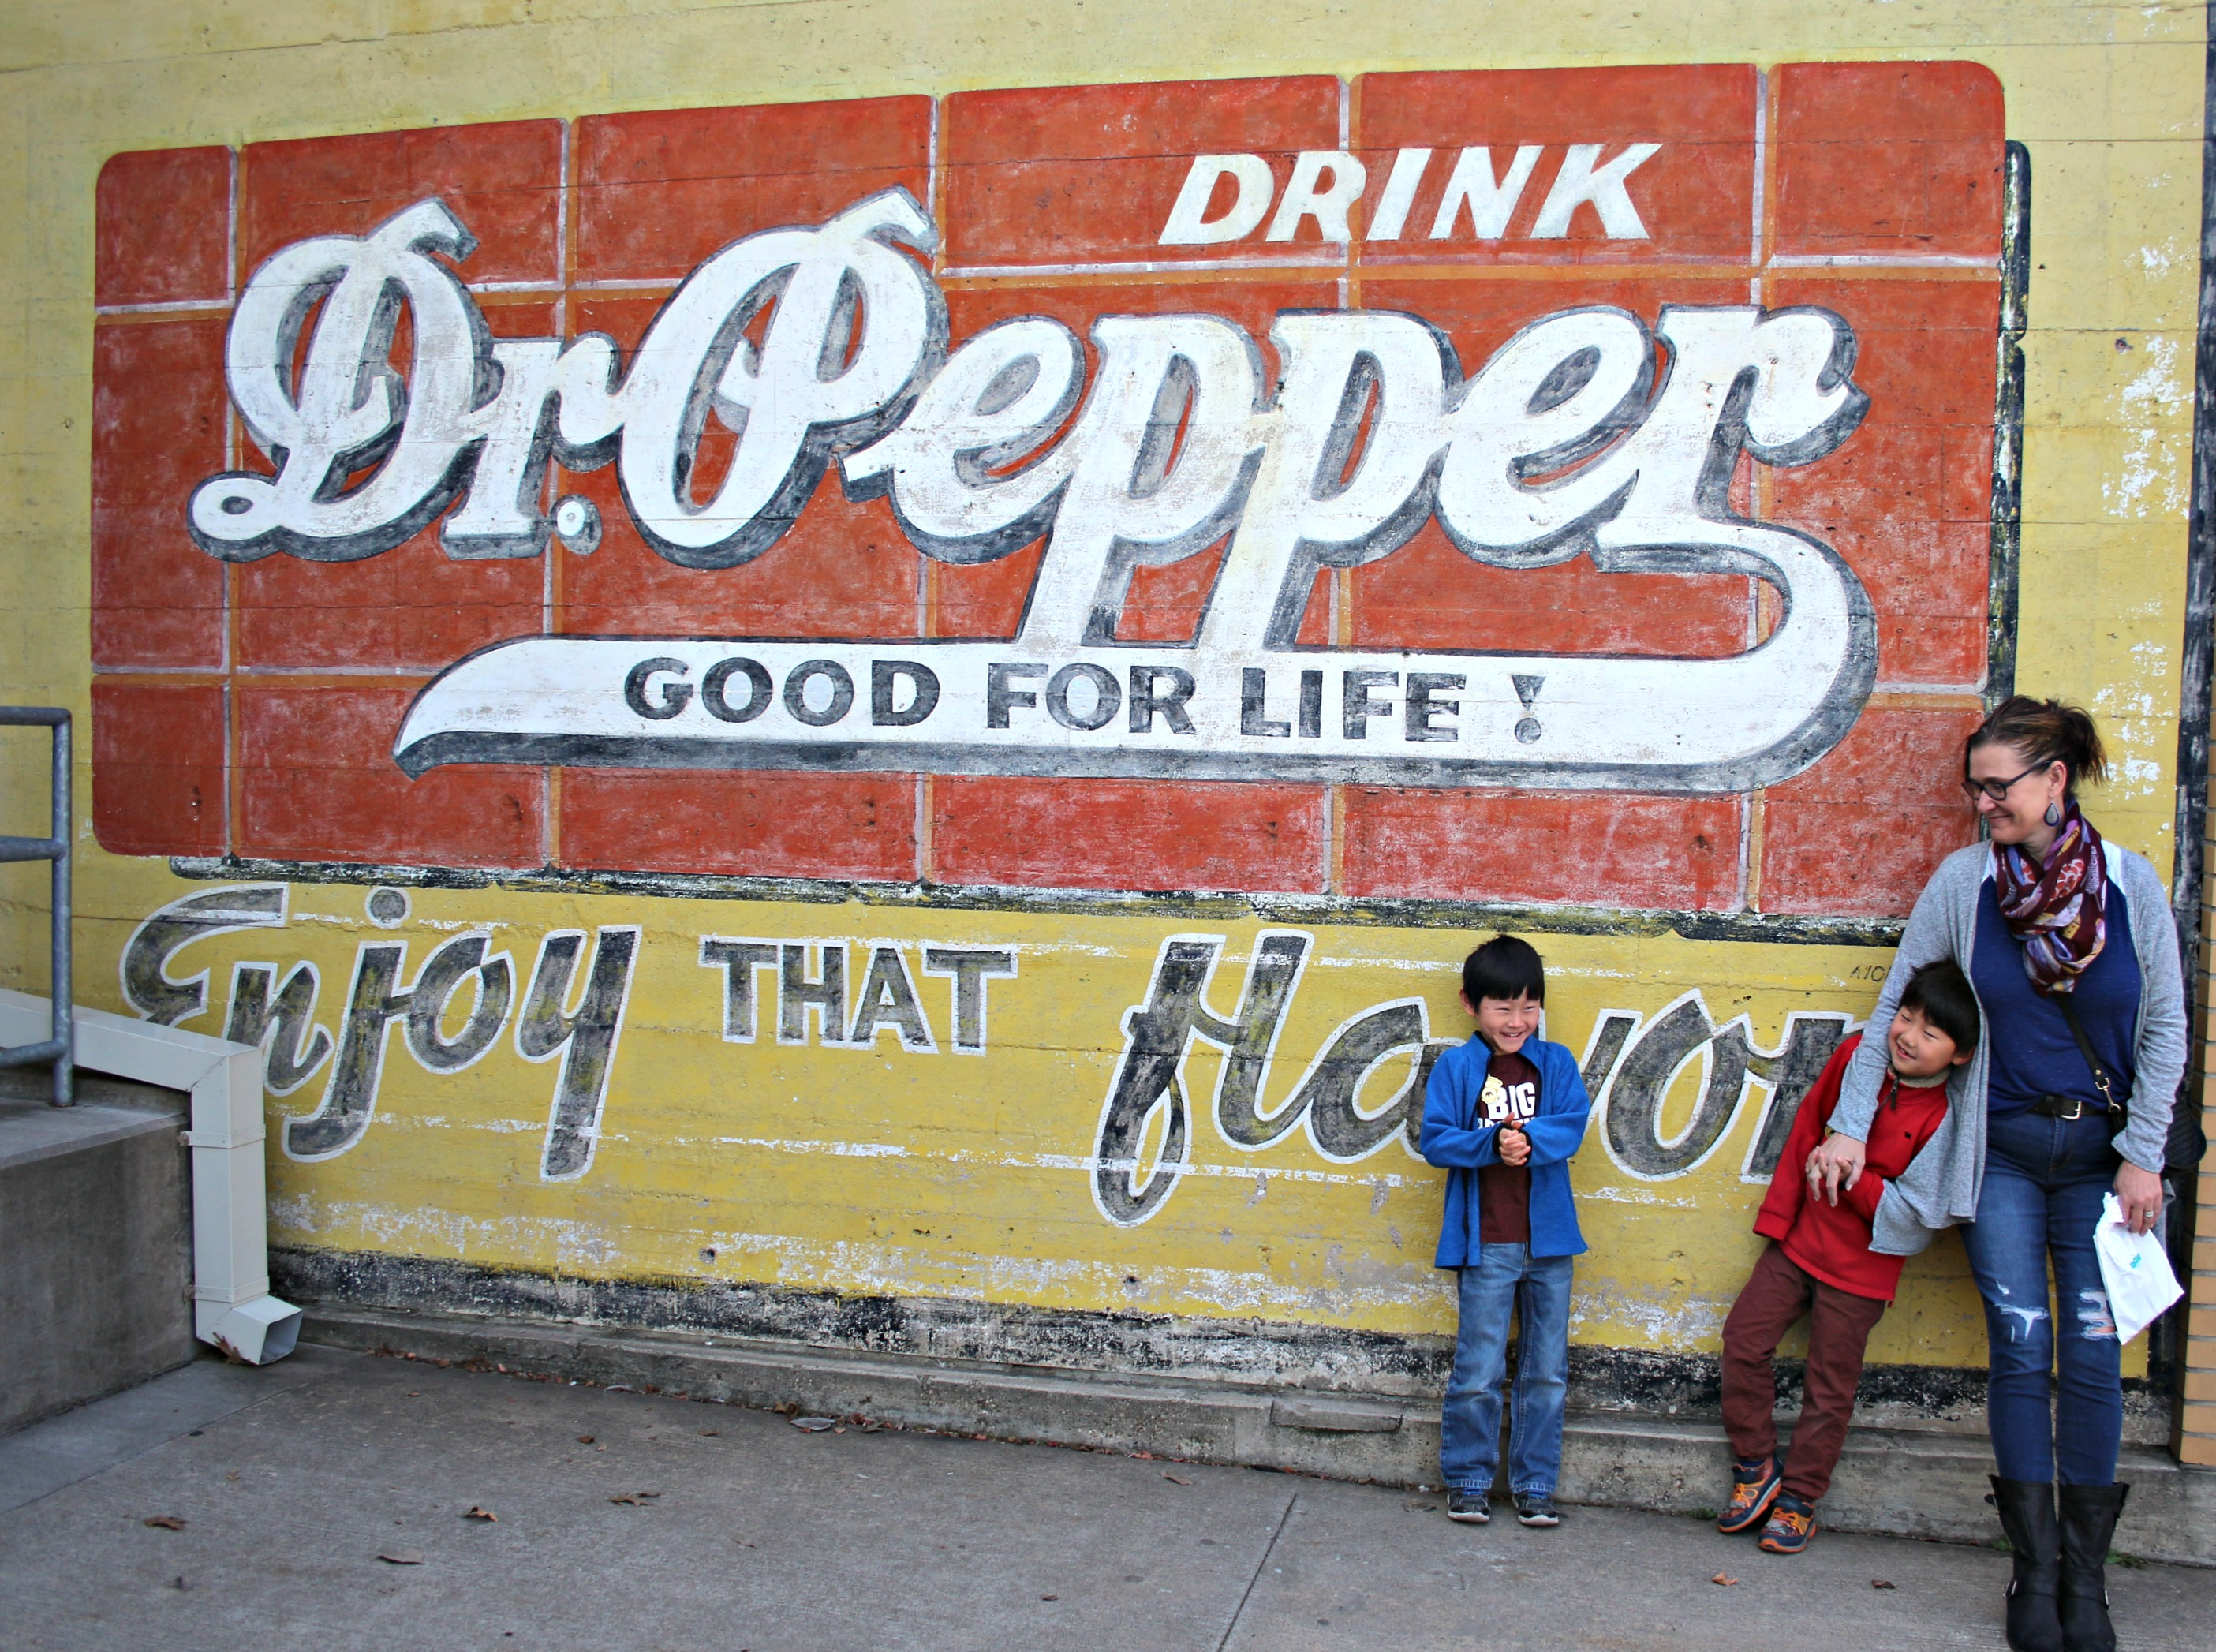 If you're looking for things to do in Waco, check out the fun and quirky Dr. Pepper Museum